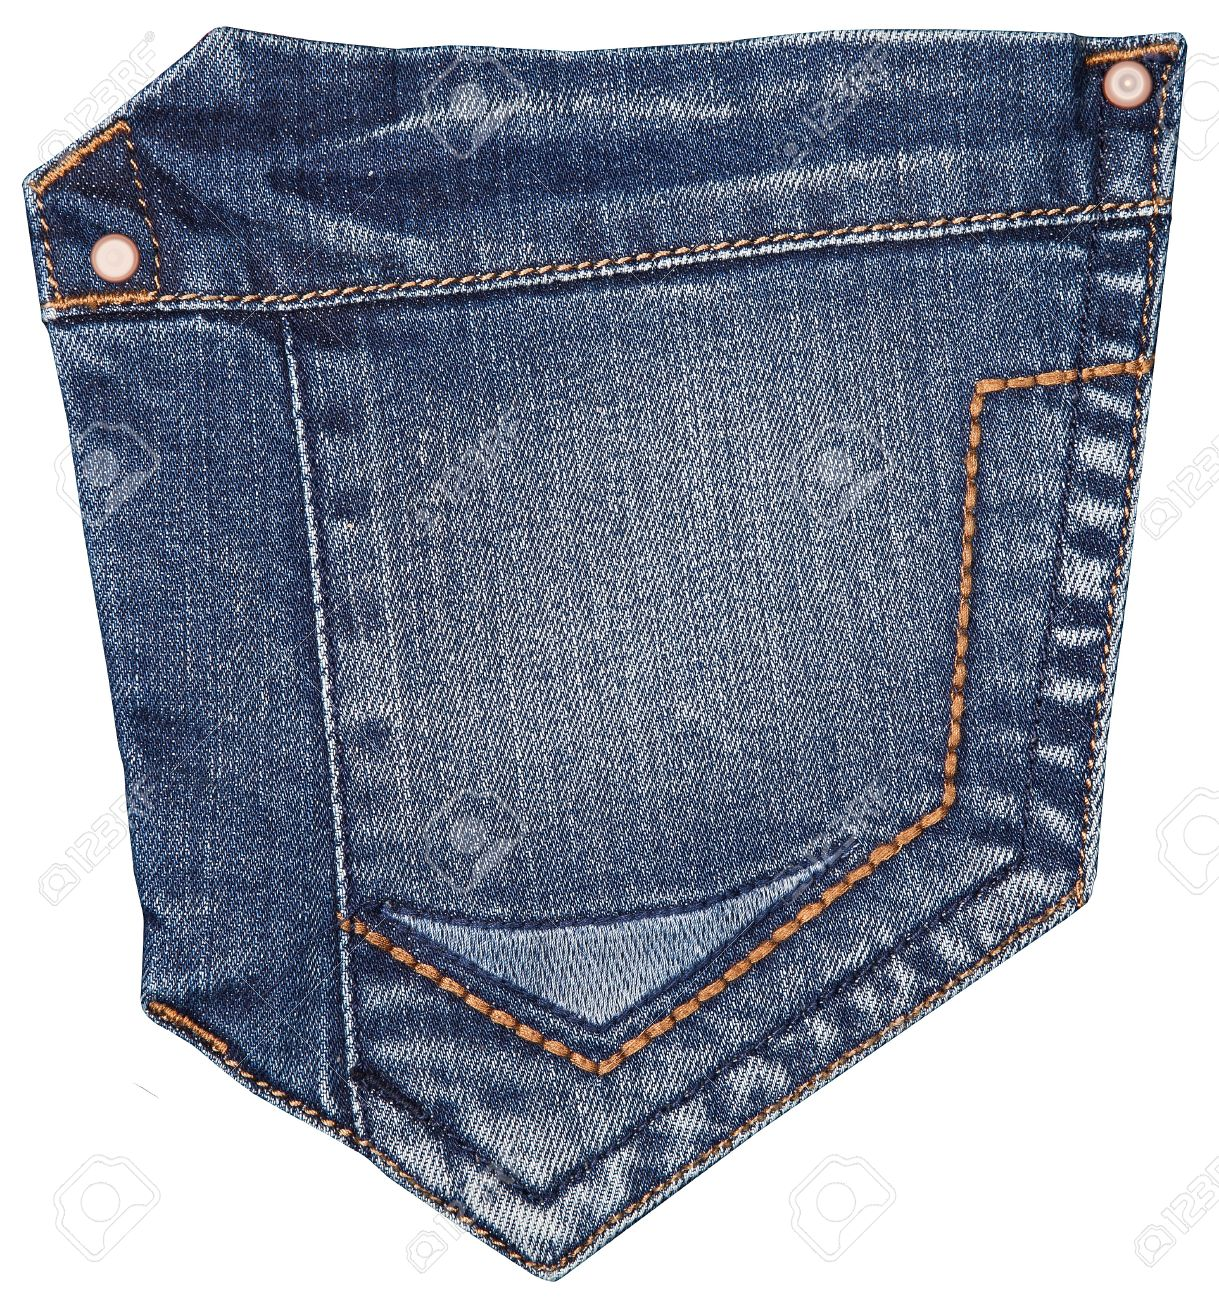 Jeans Pocket Isolated On White Stock Photo Picture And Royalty